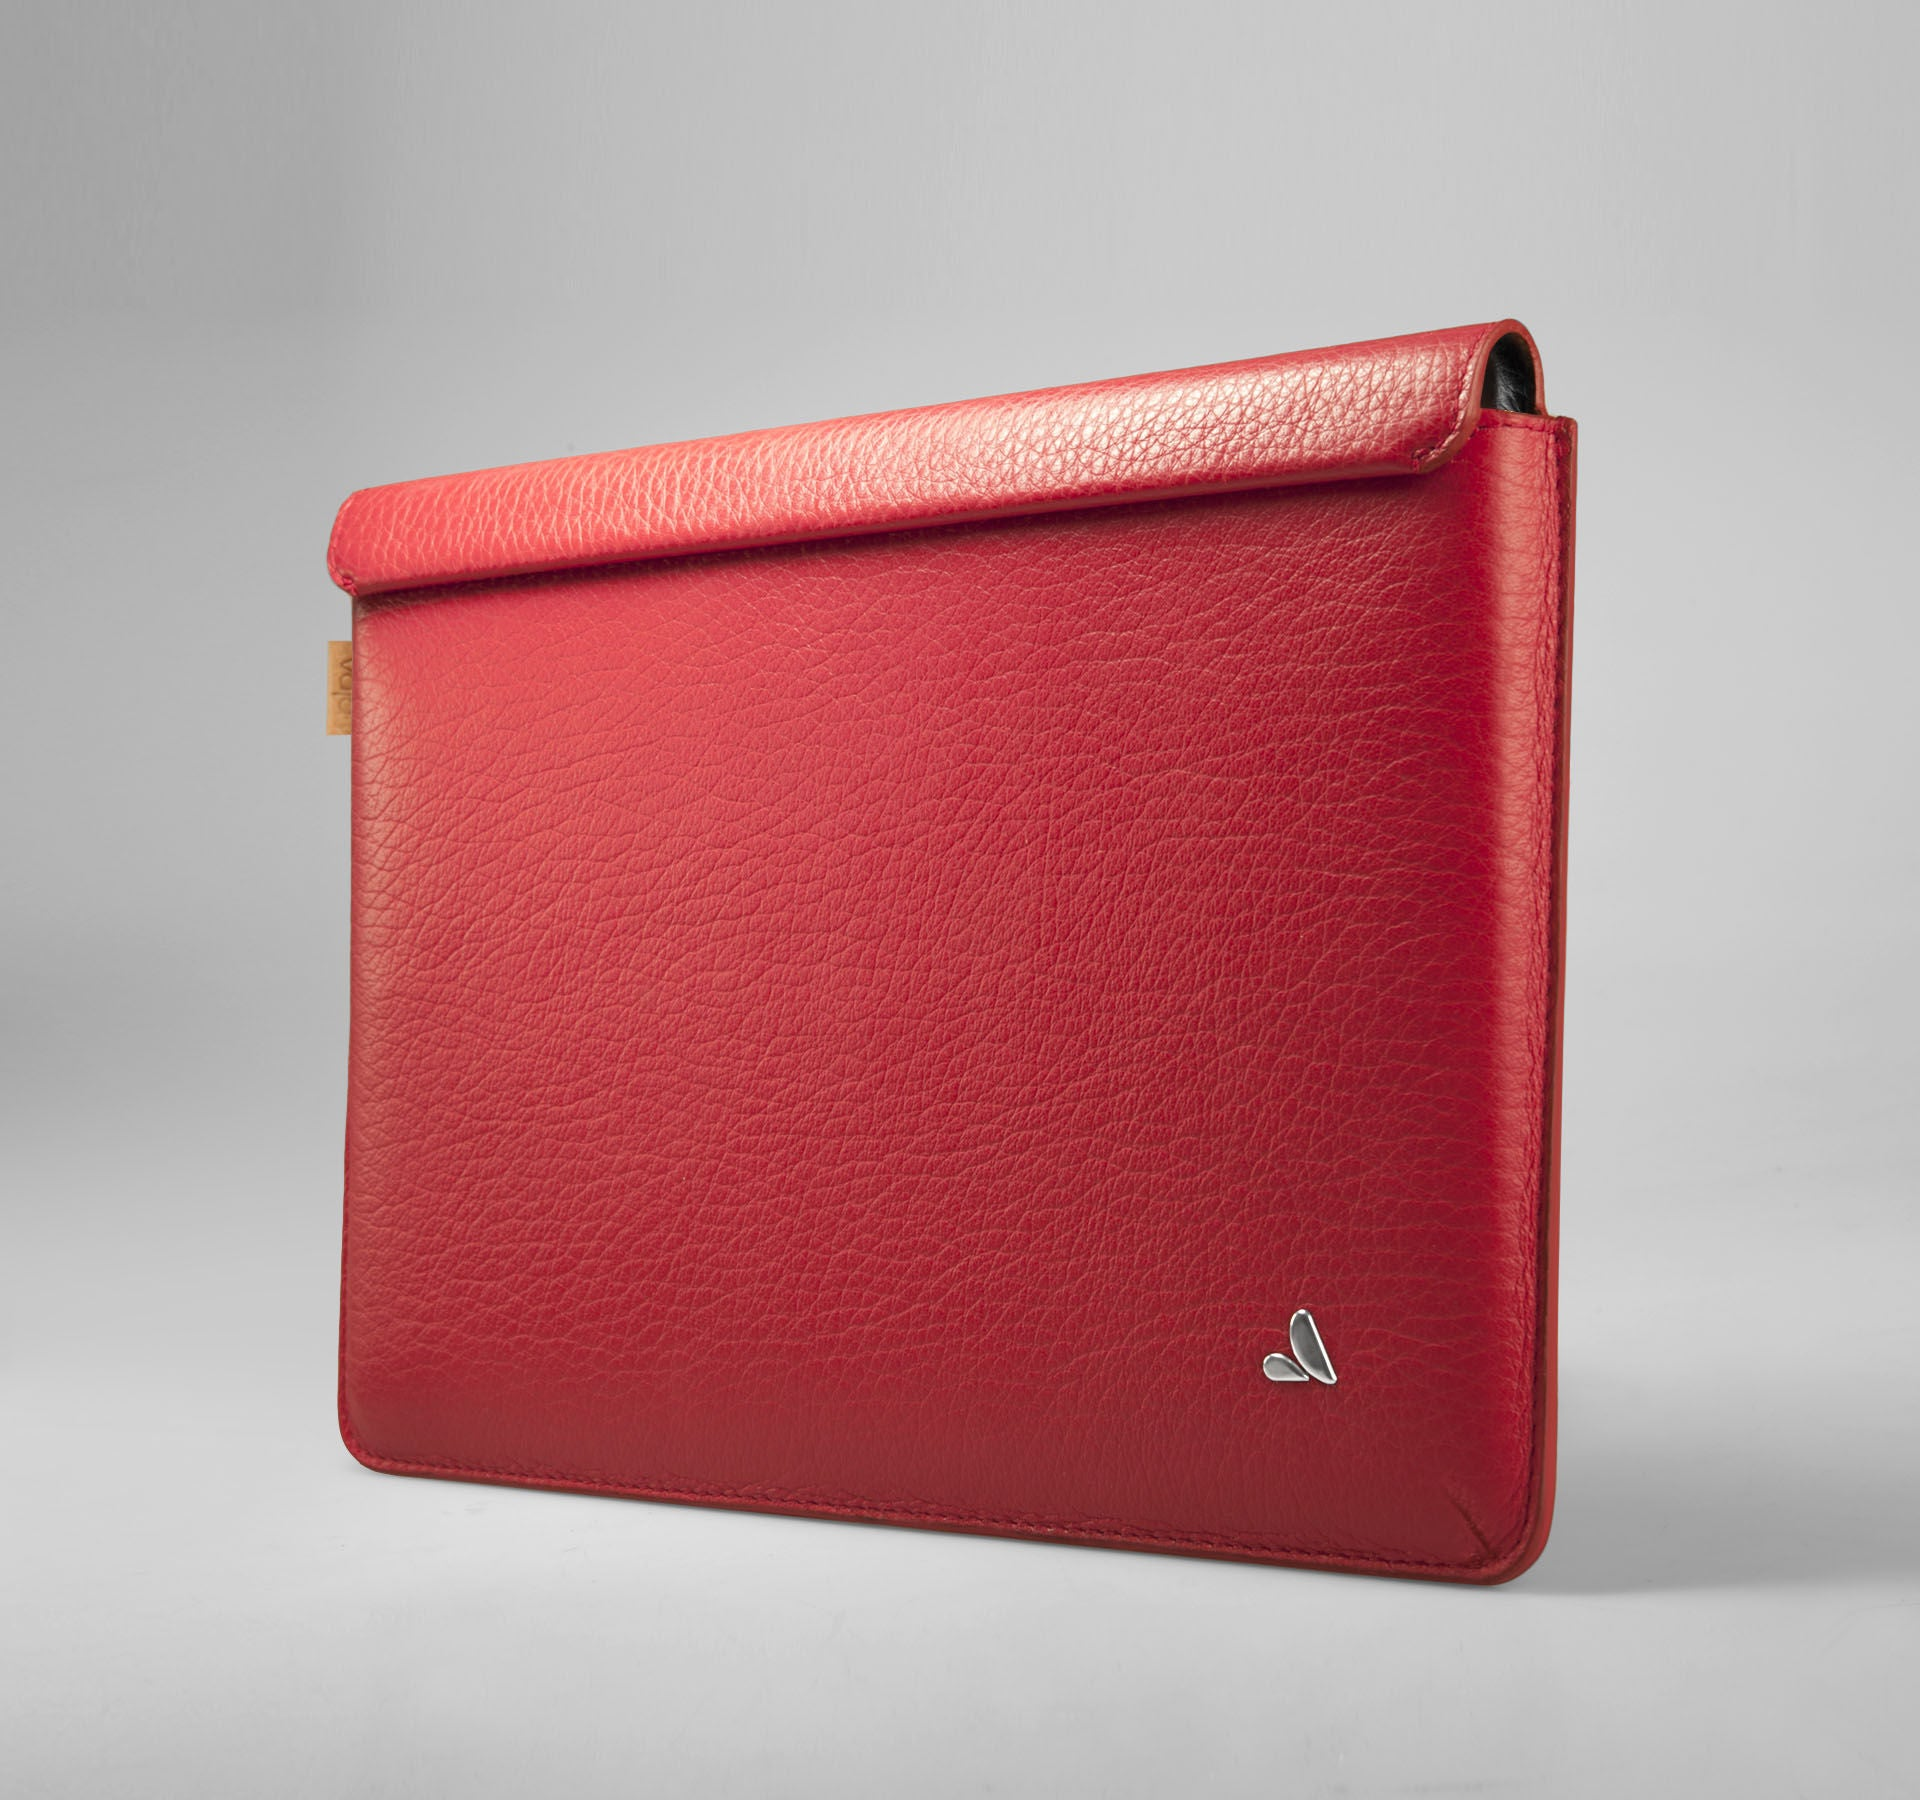 iPad Pro Leather Sleeve Case